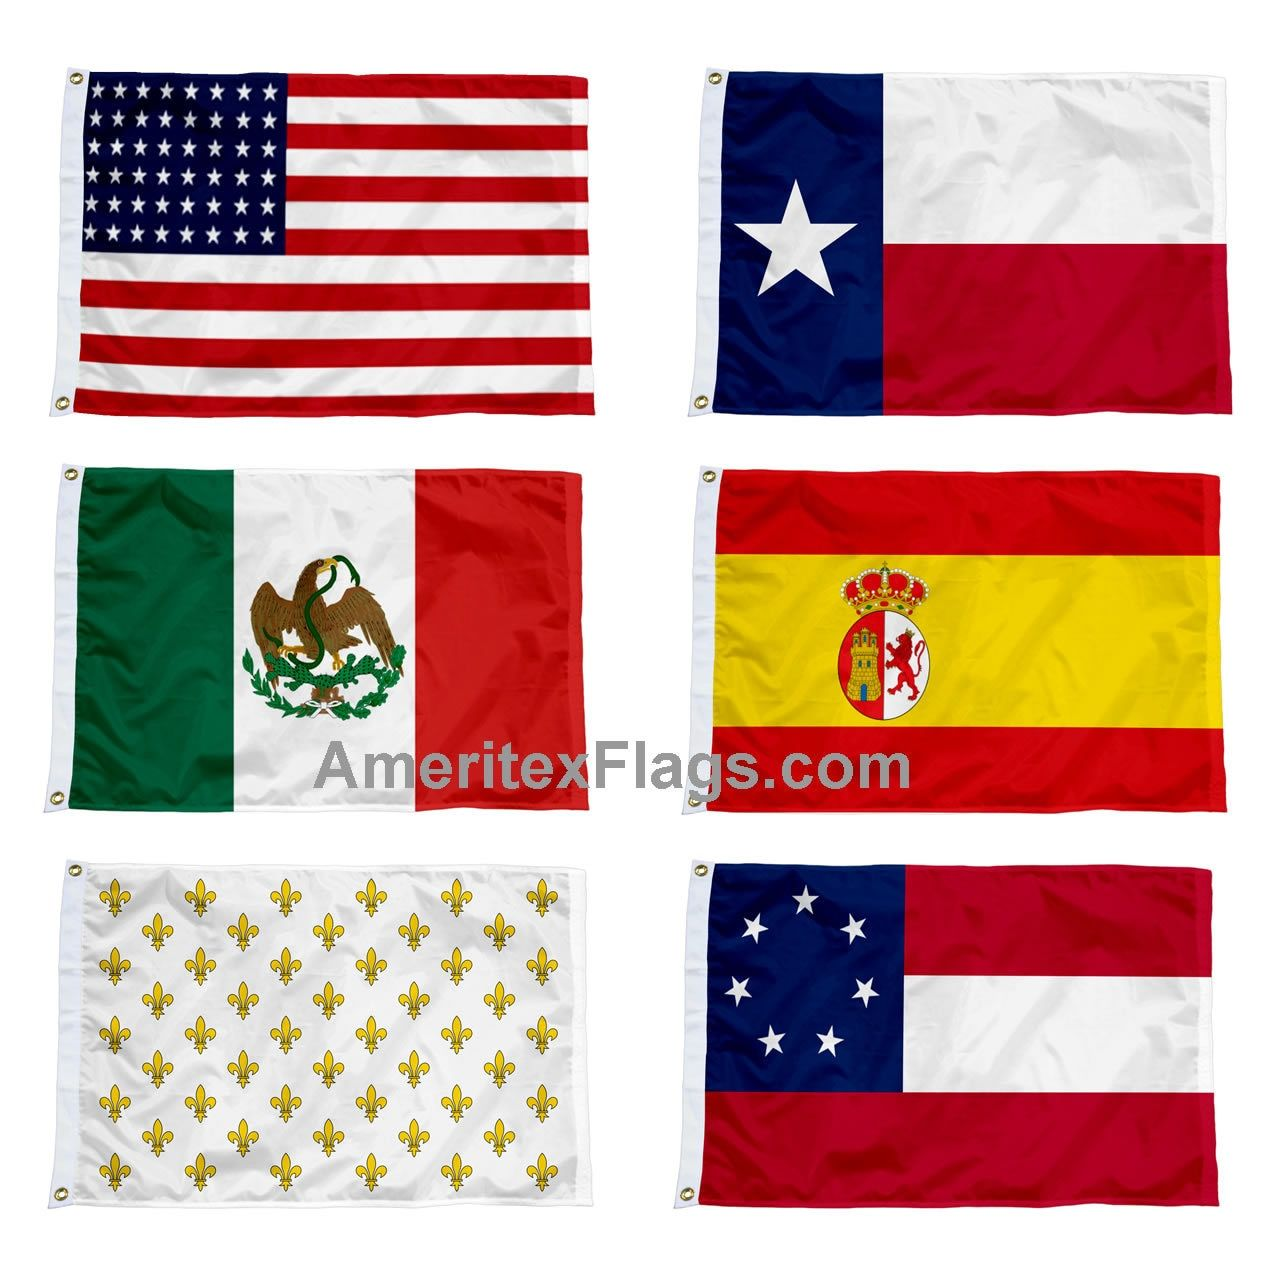 Six Historical Flags Over Texas Historical Flags France Flag Historical